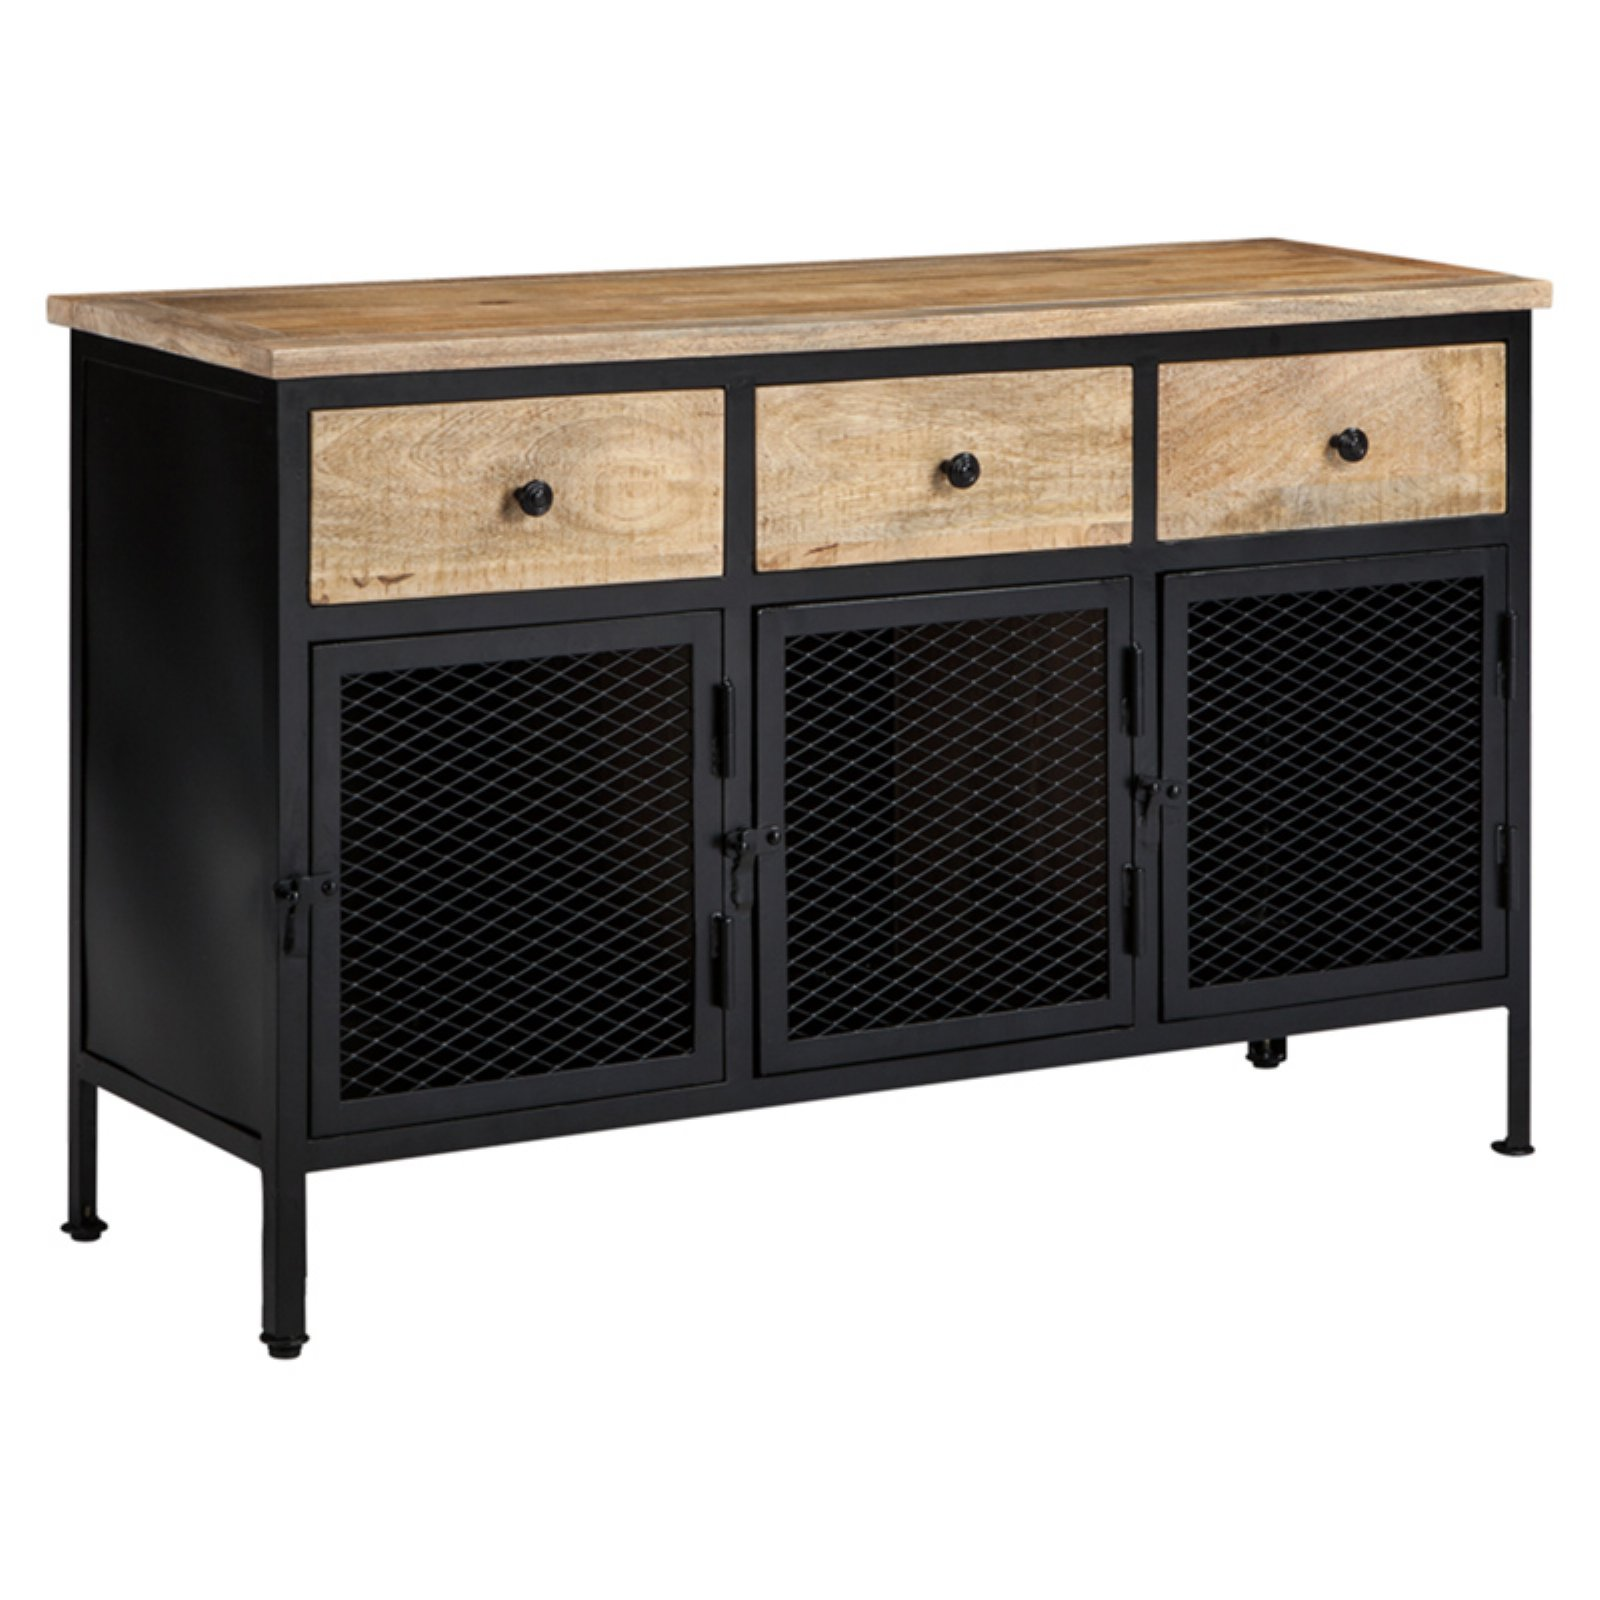 Signature Design by Ashley Ponder Ridge 49 in. Three Door Accent Cabinet